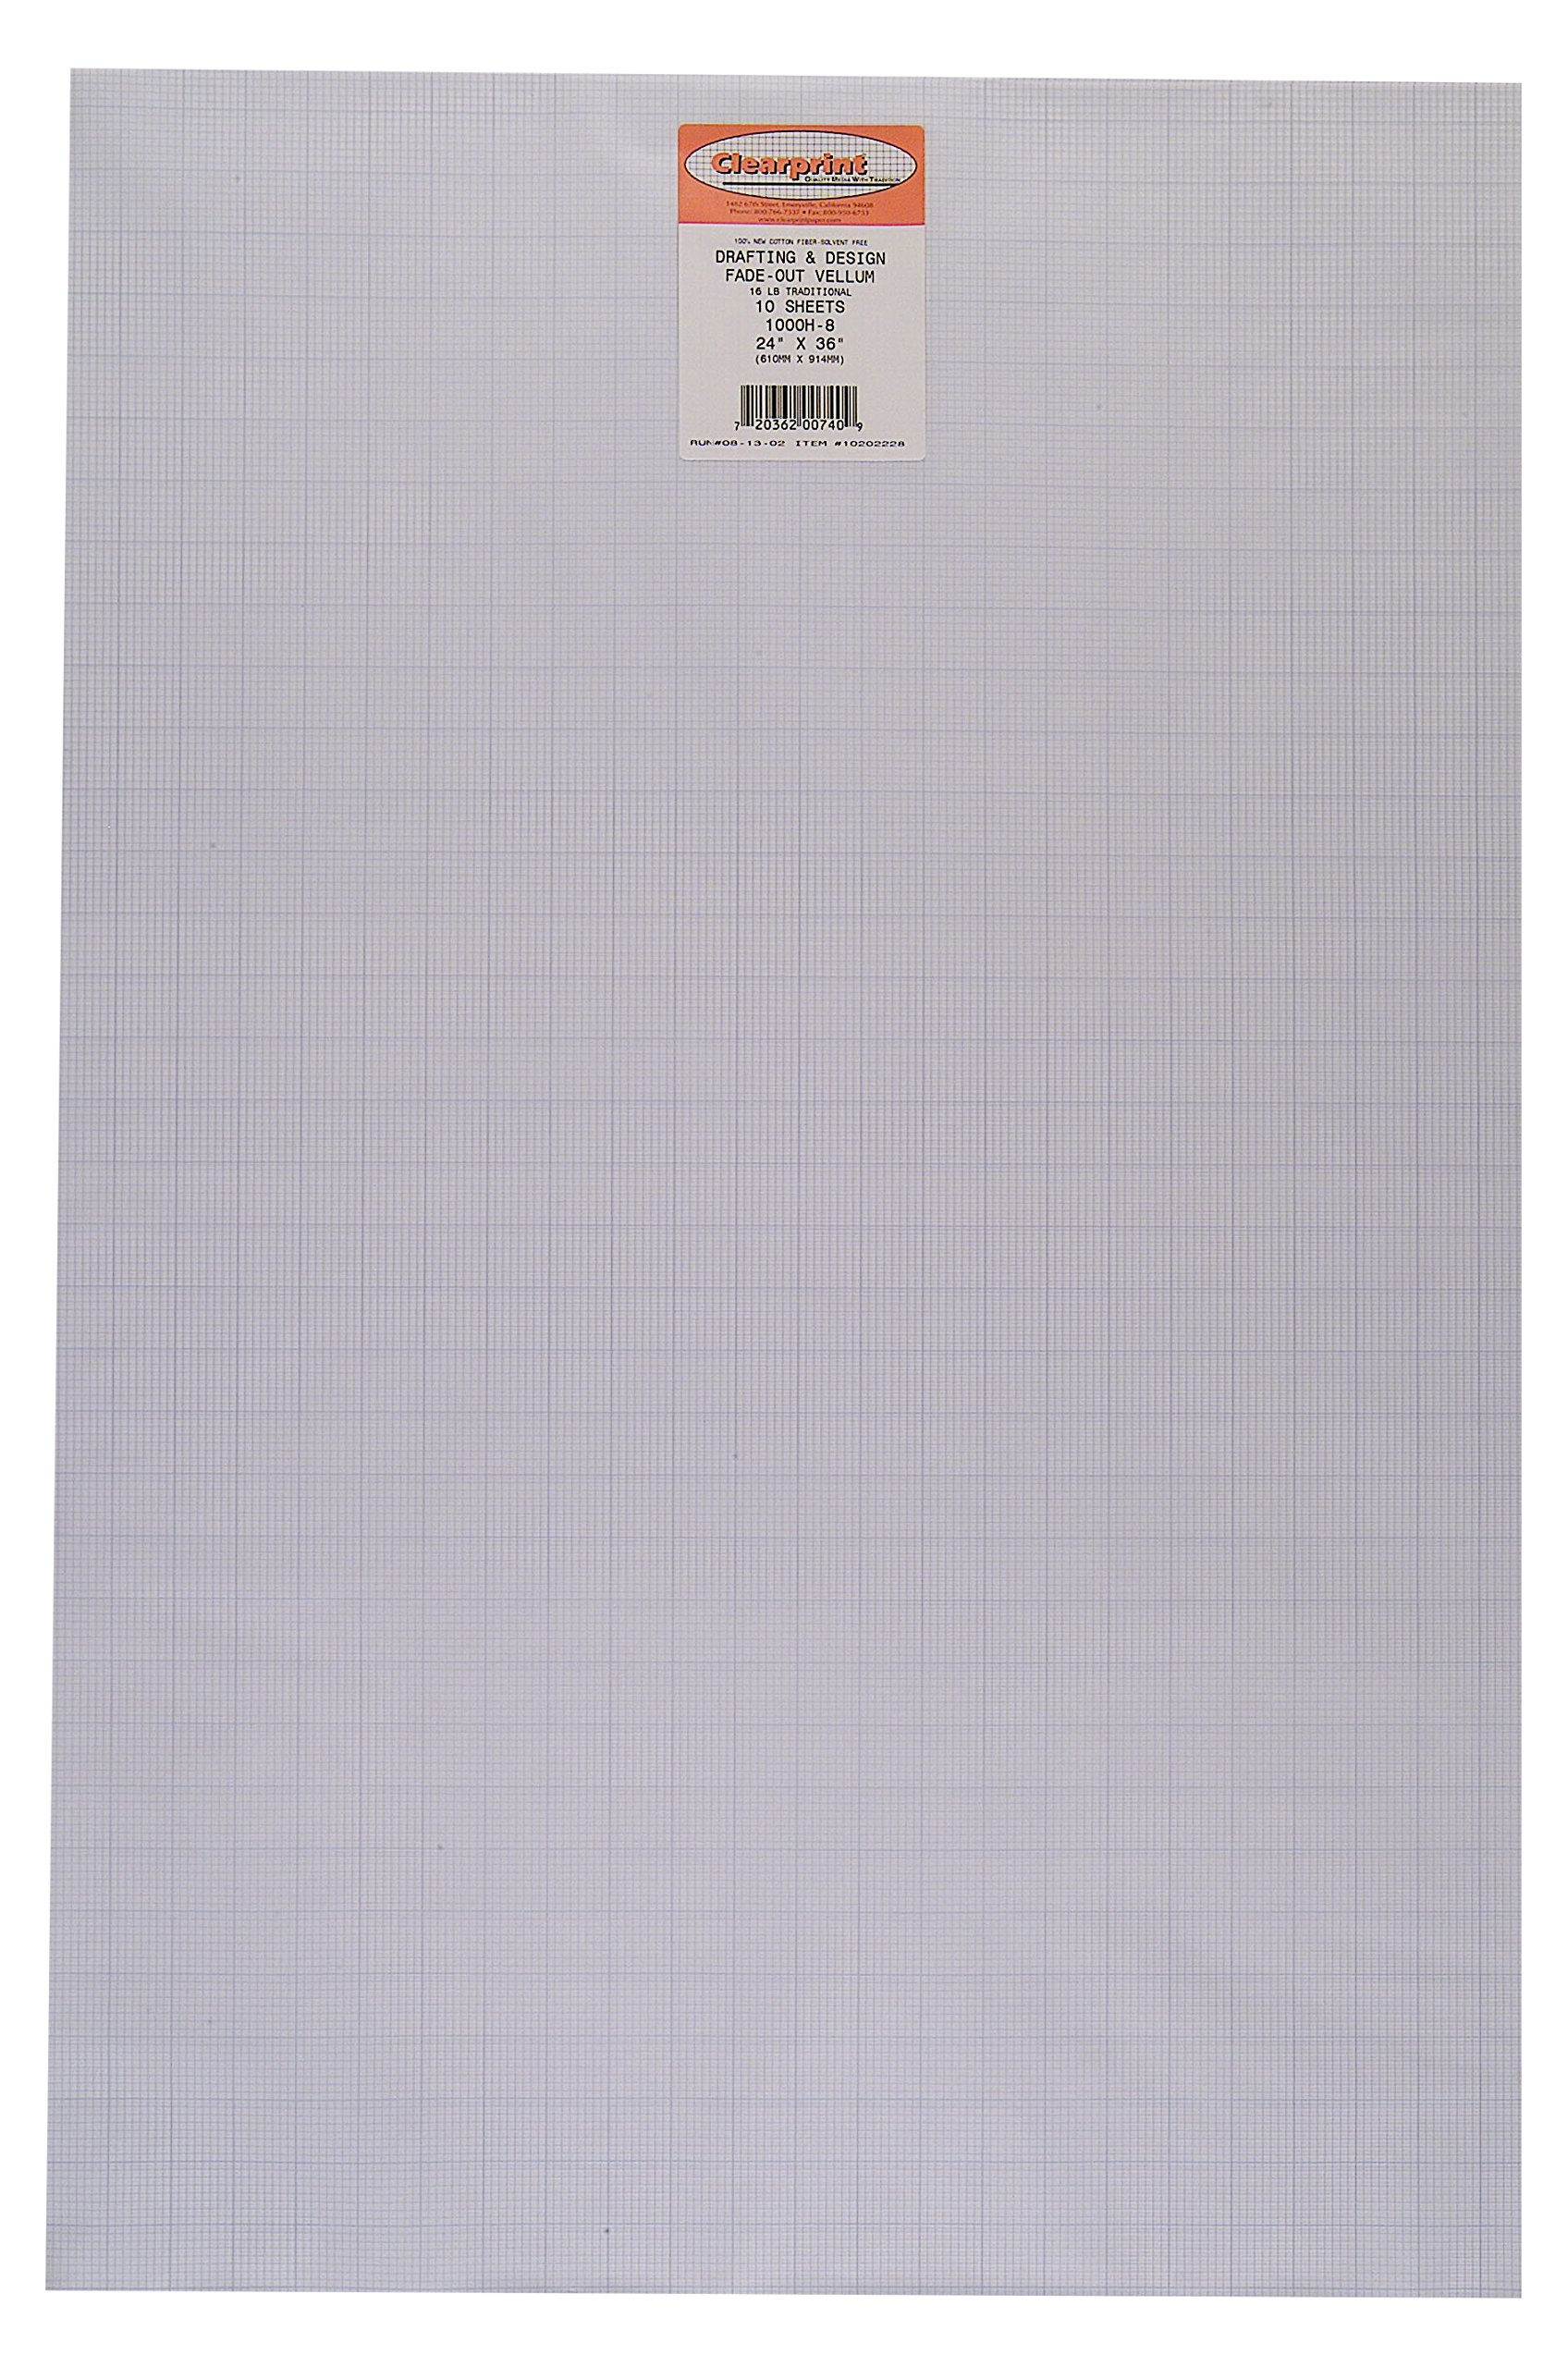 Clearprint 1000H Design Vellum Sheets with Printed Fade-Out 8x8 Grid, 16 lb, 100% Cotton, 24 x 36 Inches, 10 Sheets/Pack, Translucent White (10202228) by Clearprint